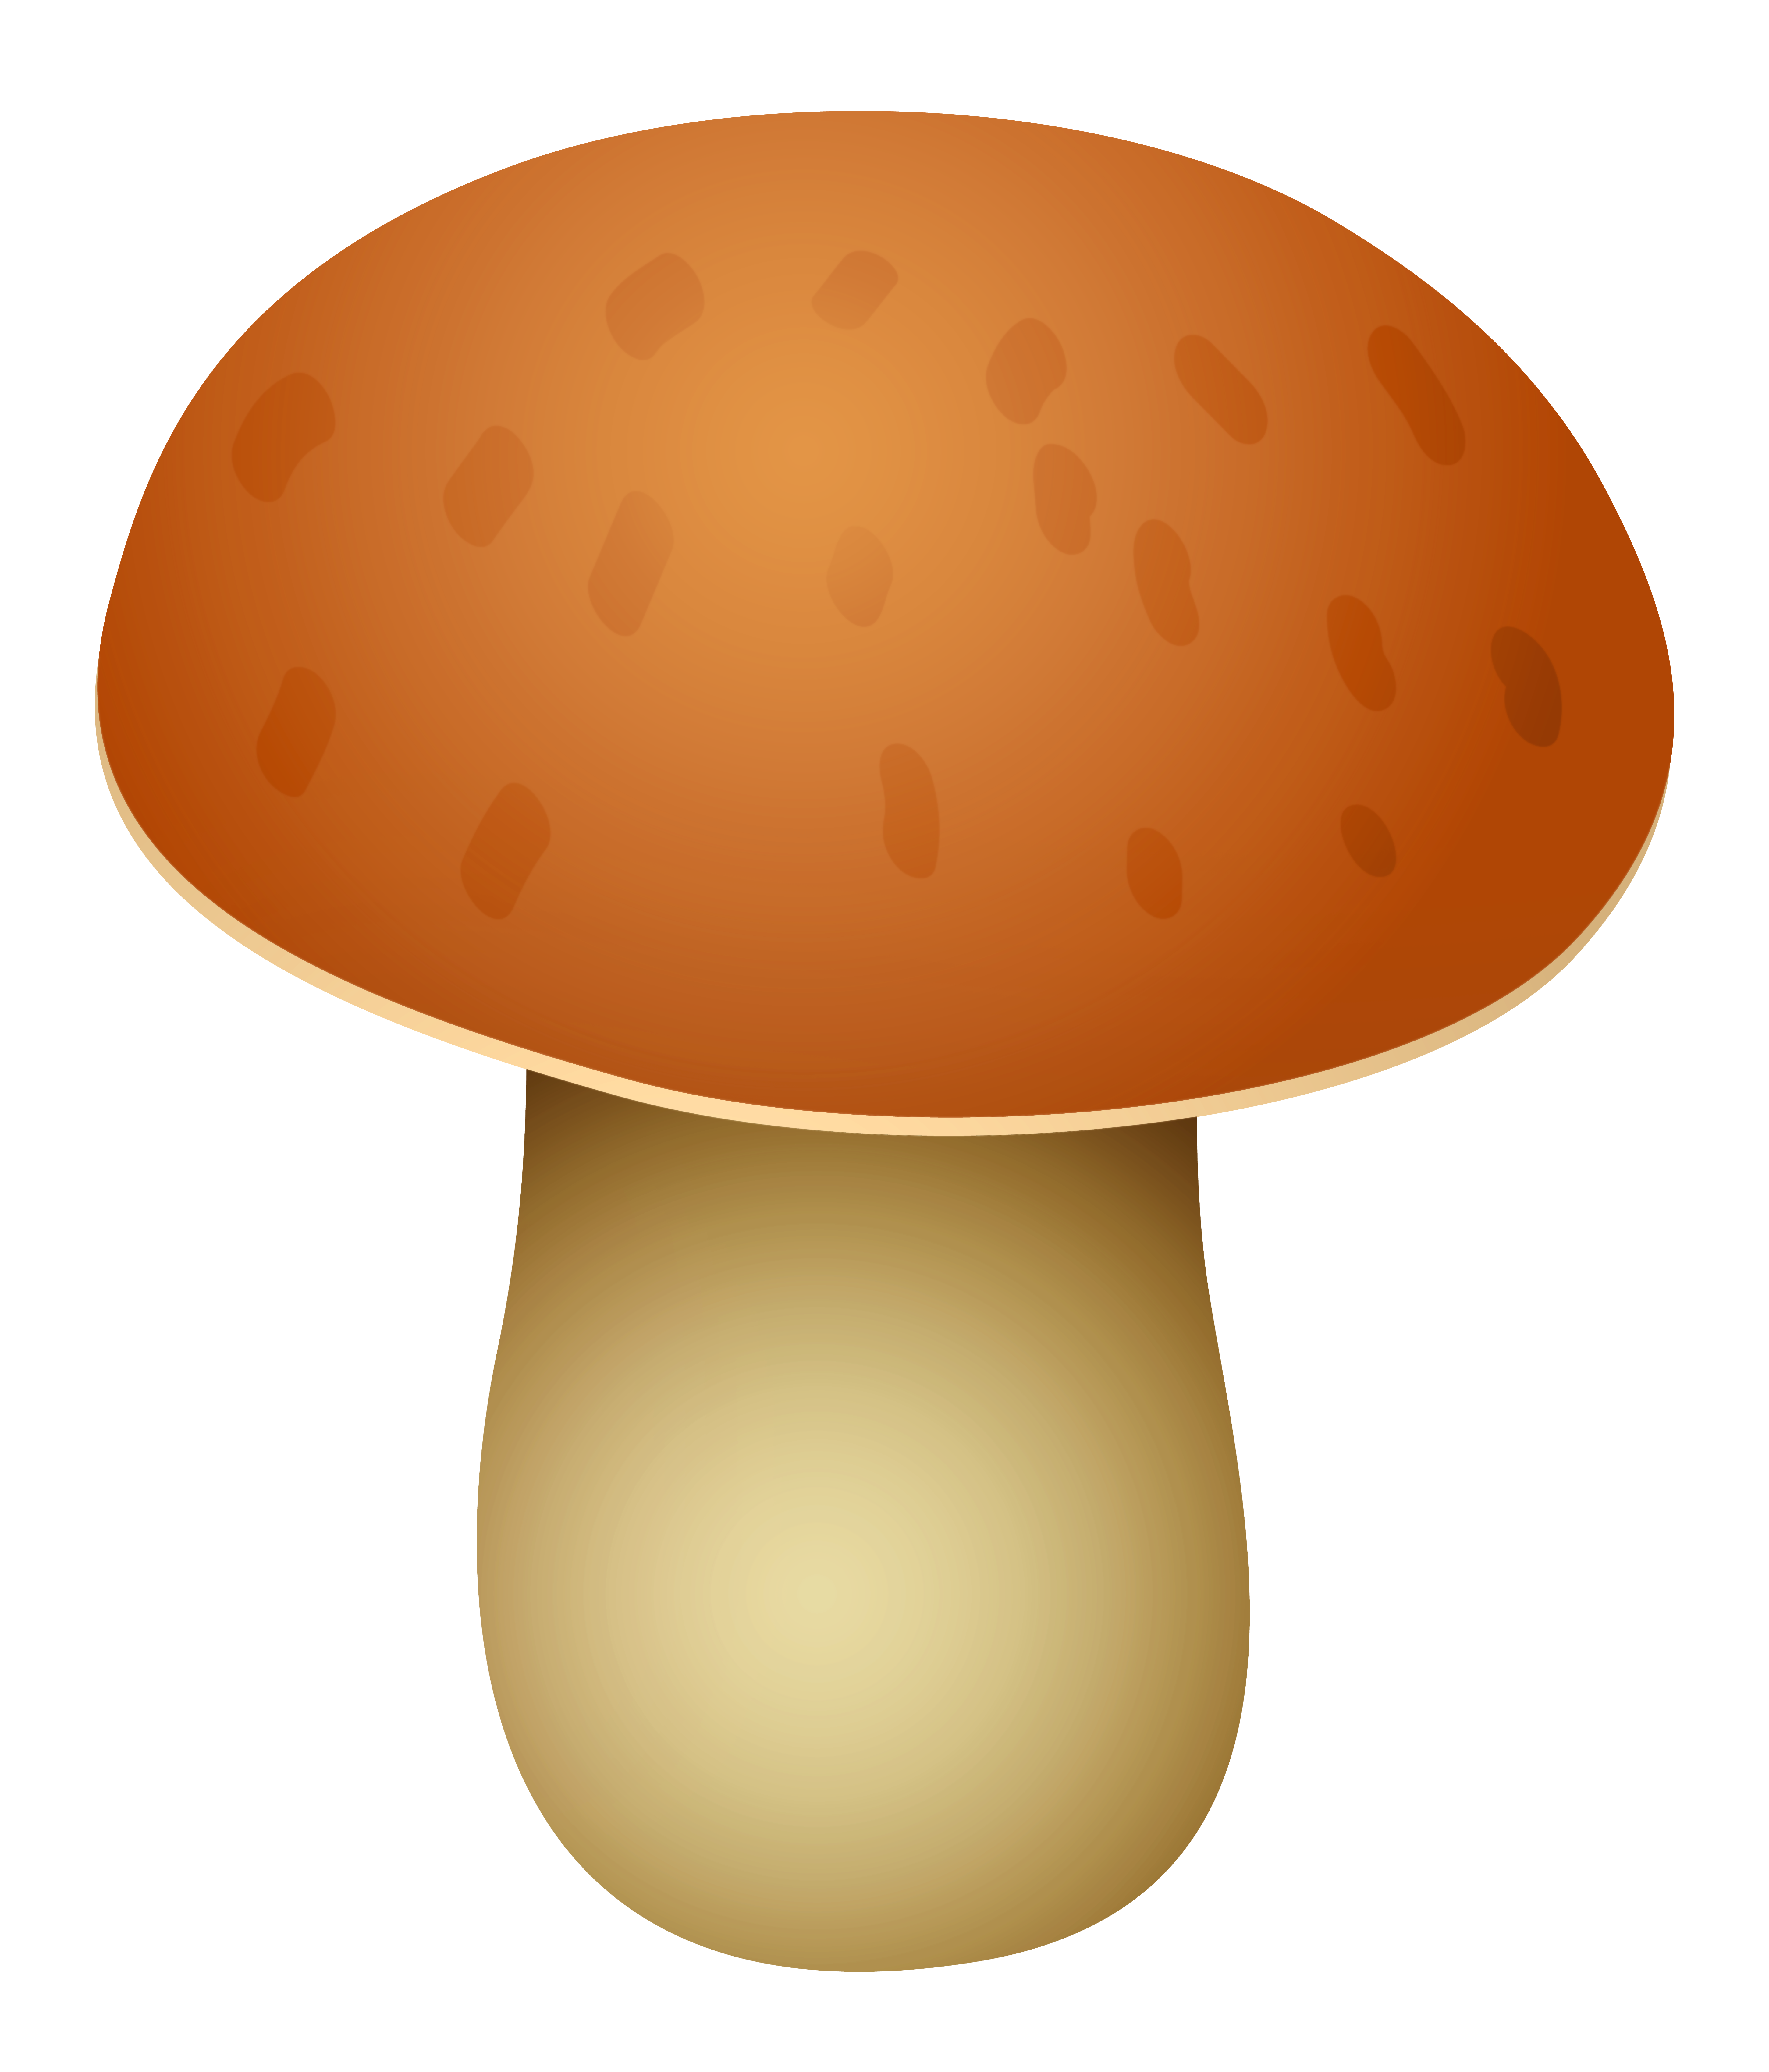 Mushroom clipart realistic. Brown spotted png best